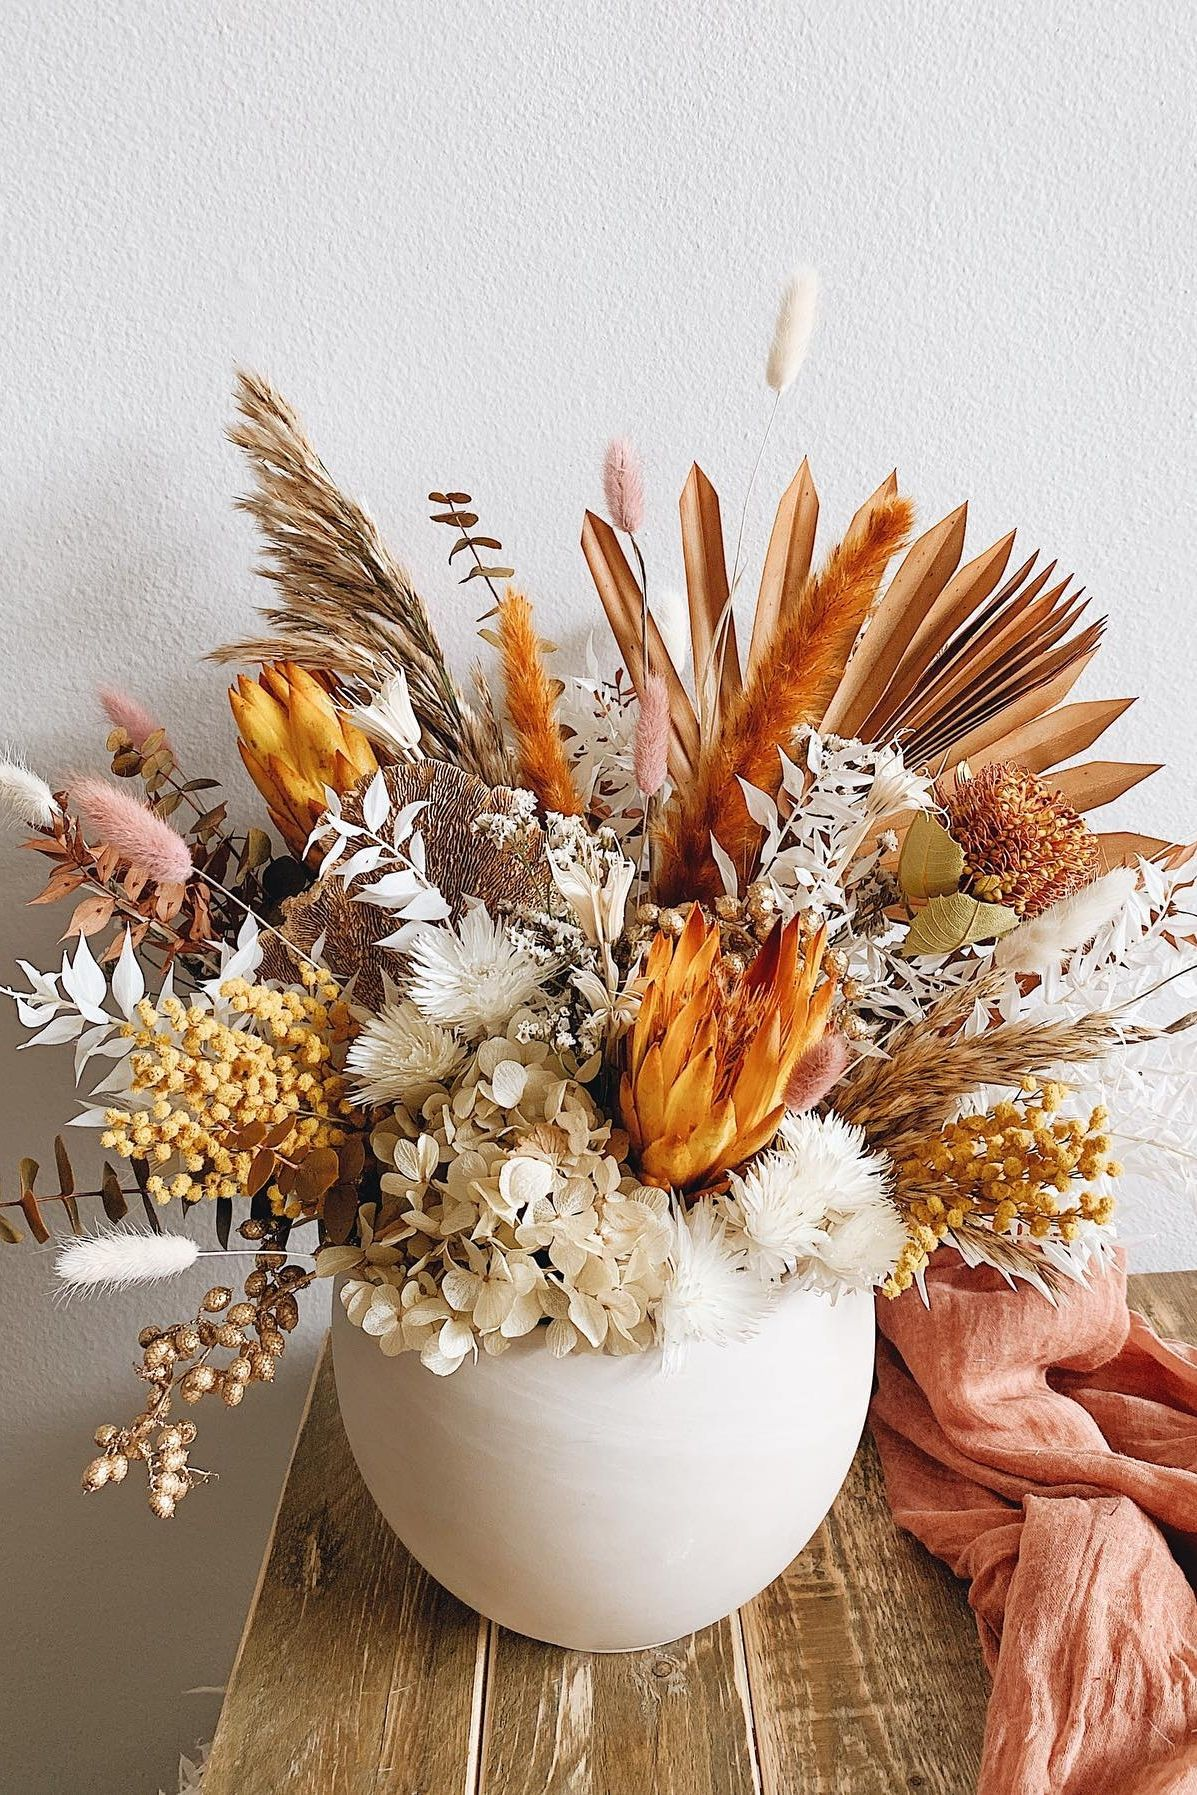 Terracotta Dried Flower Arrangement Ideas In 2020 Dried Flower Arrangements Dried Flowers Fall Thanksgiving Decor